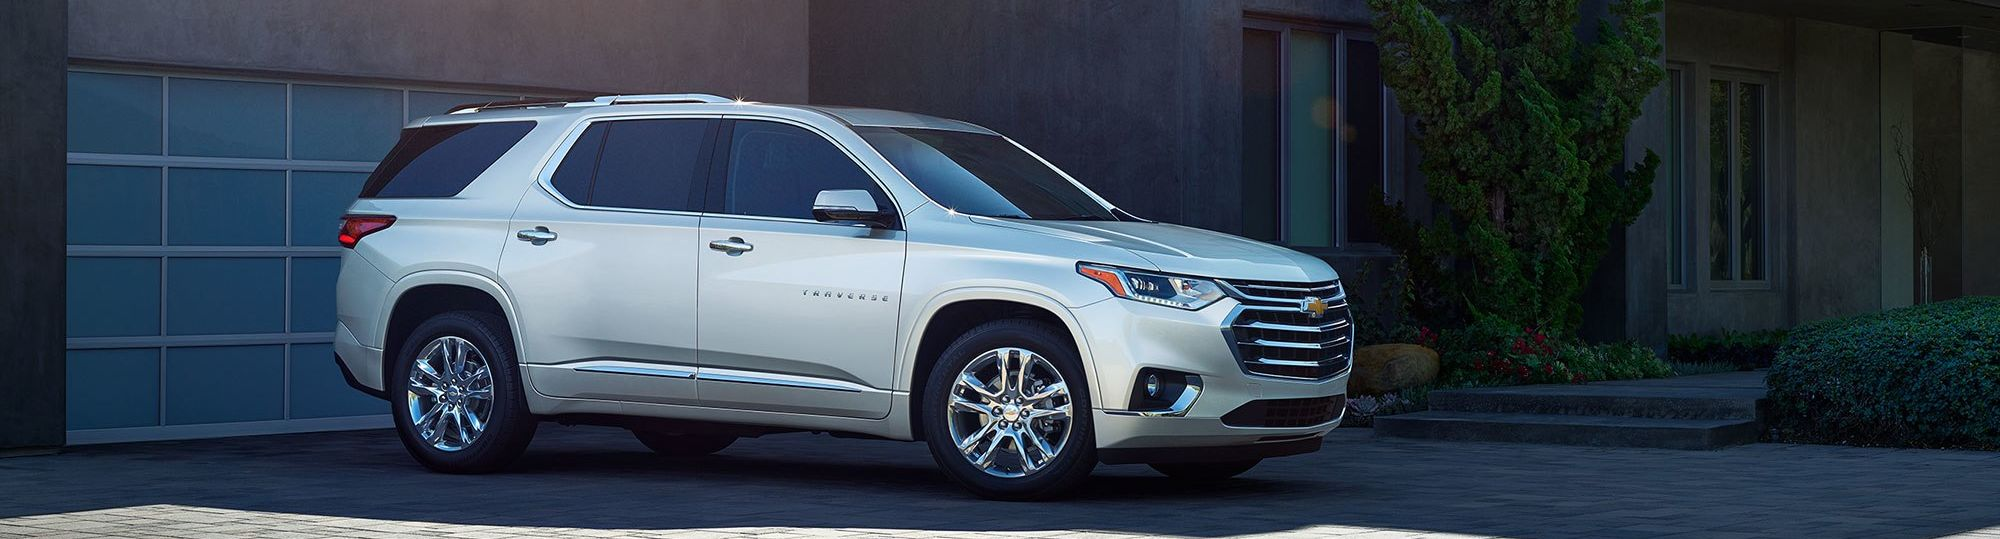 2020 Chevrolet Traverse Leasing near Addison, IL